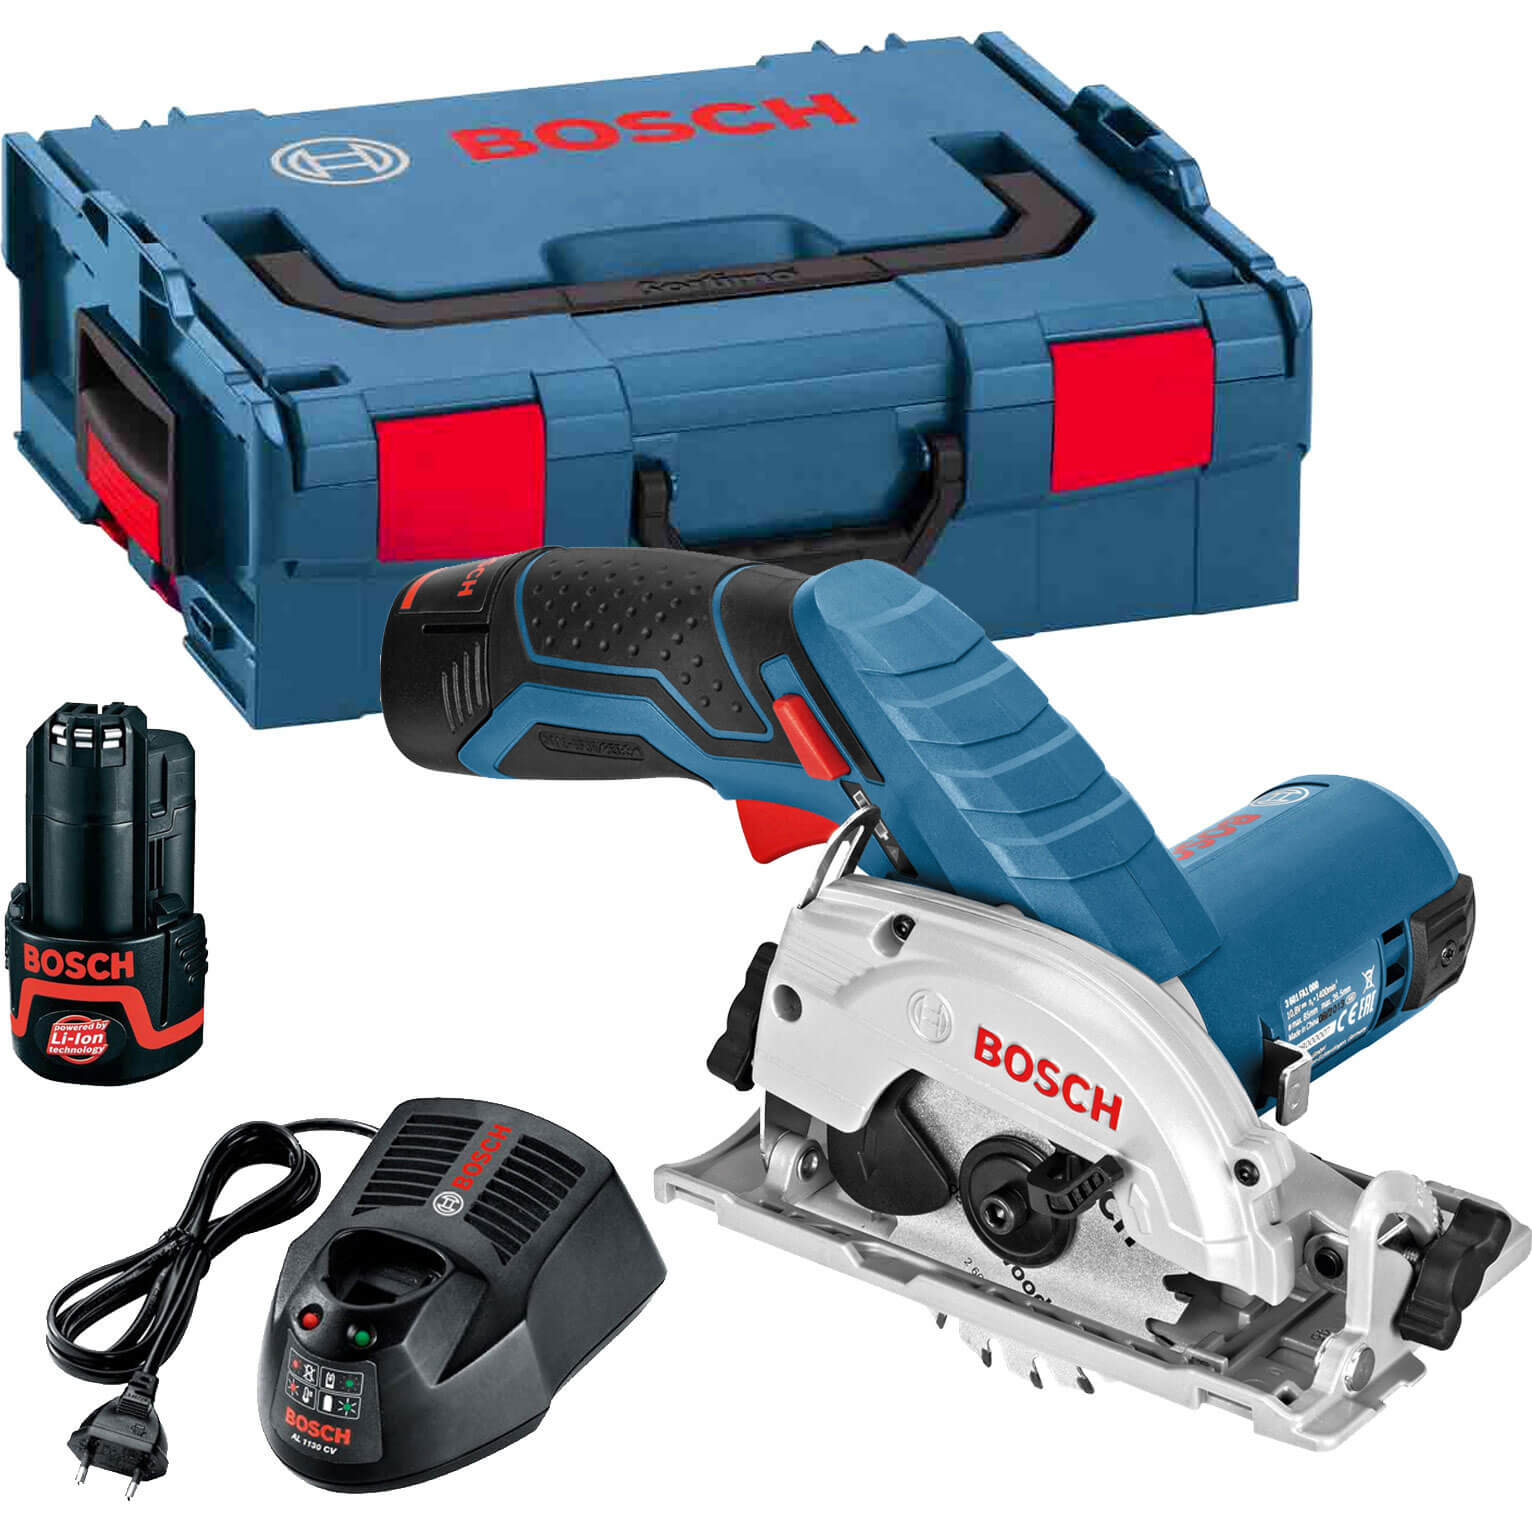 Bosch GKS 10.8 V-LI 10.8v Cordless Circular Saw 85mm Blade with L Boxx & 2 Lithium Ion Batteries 2ah